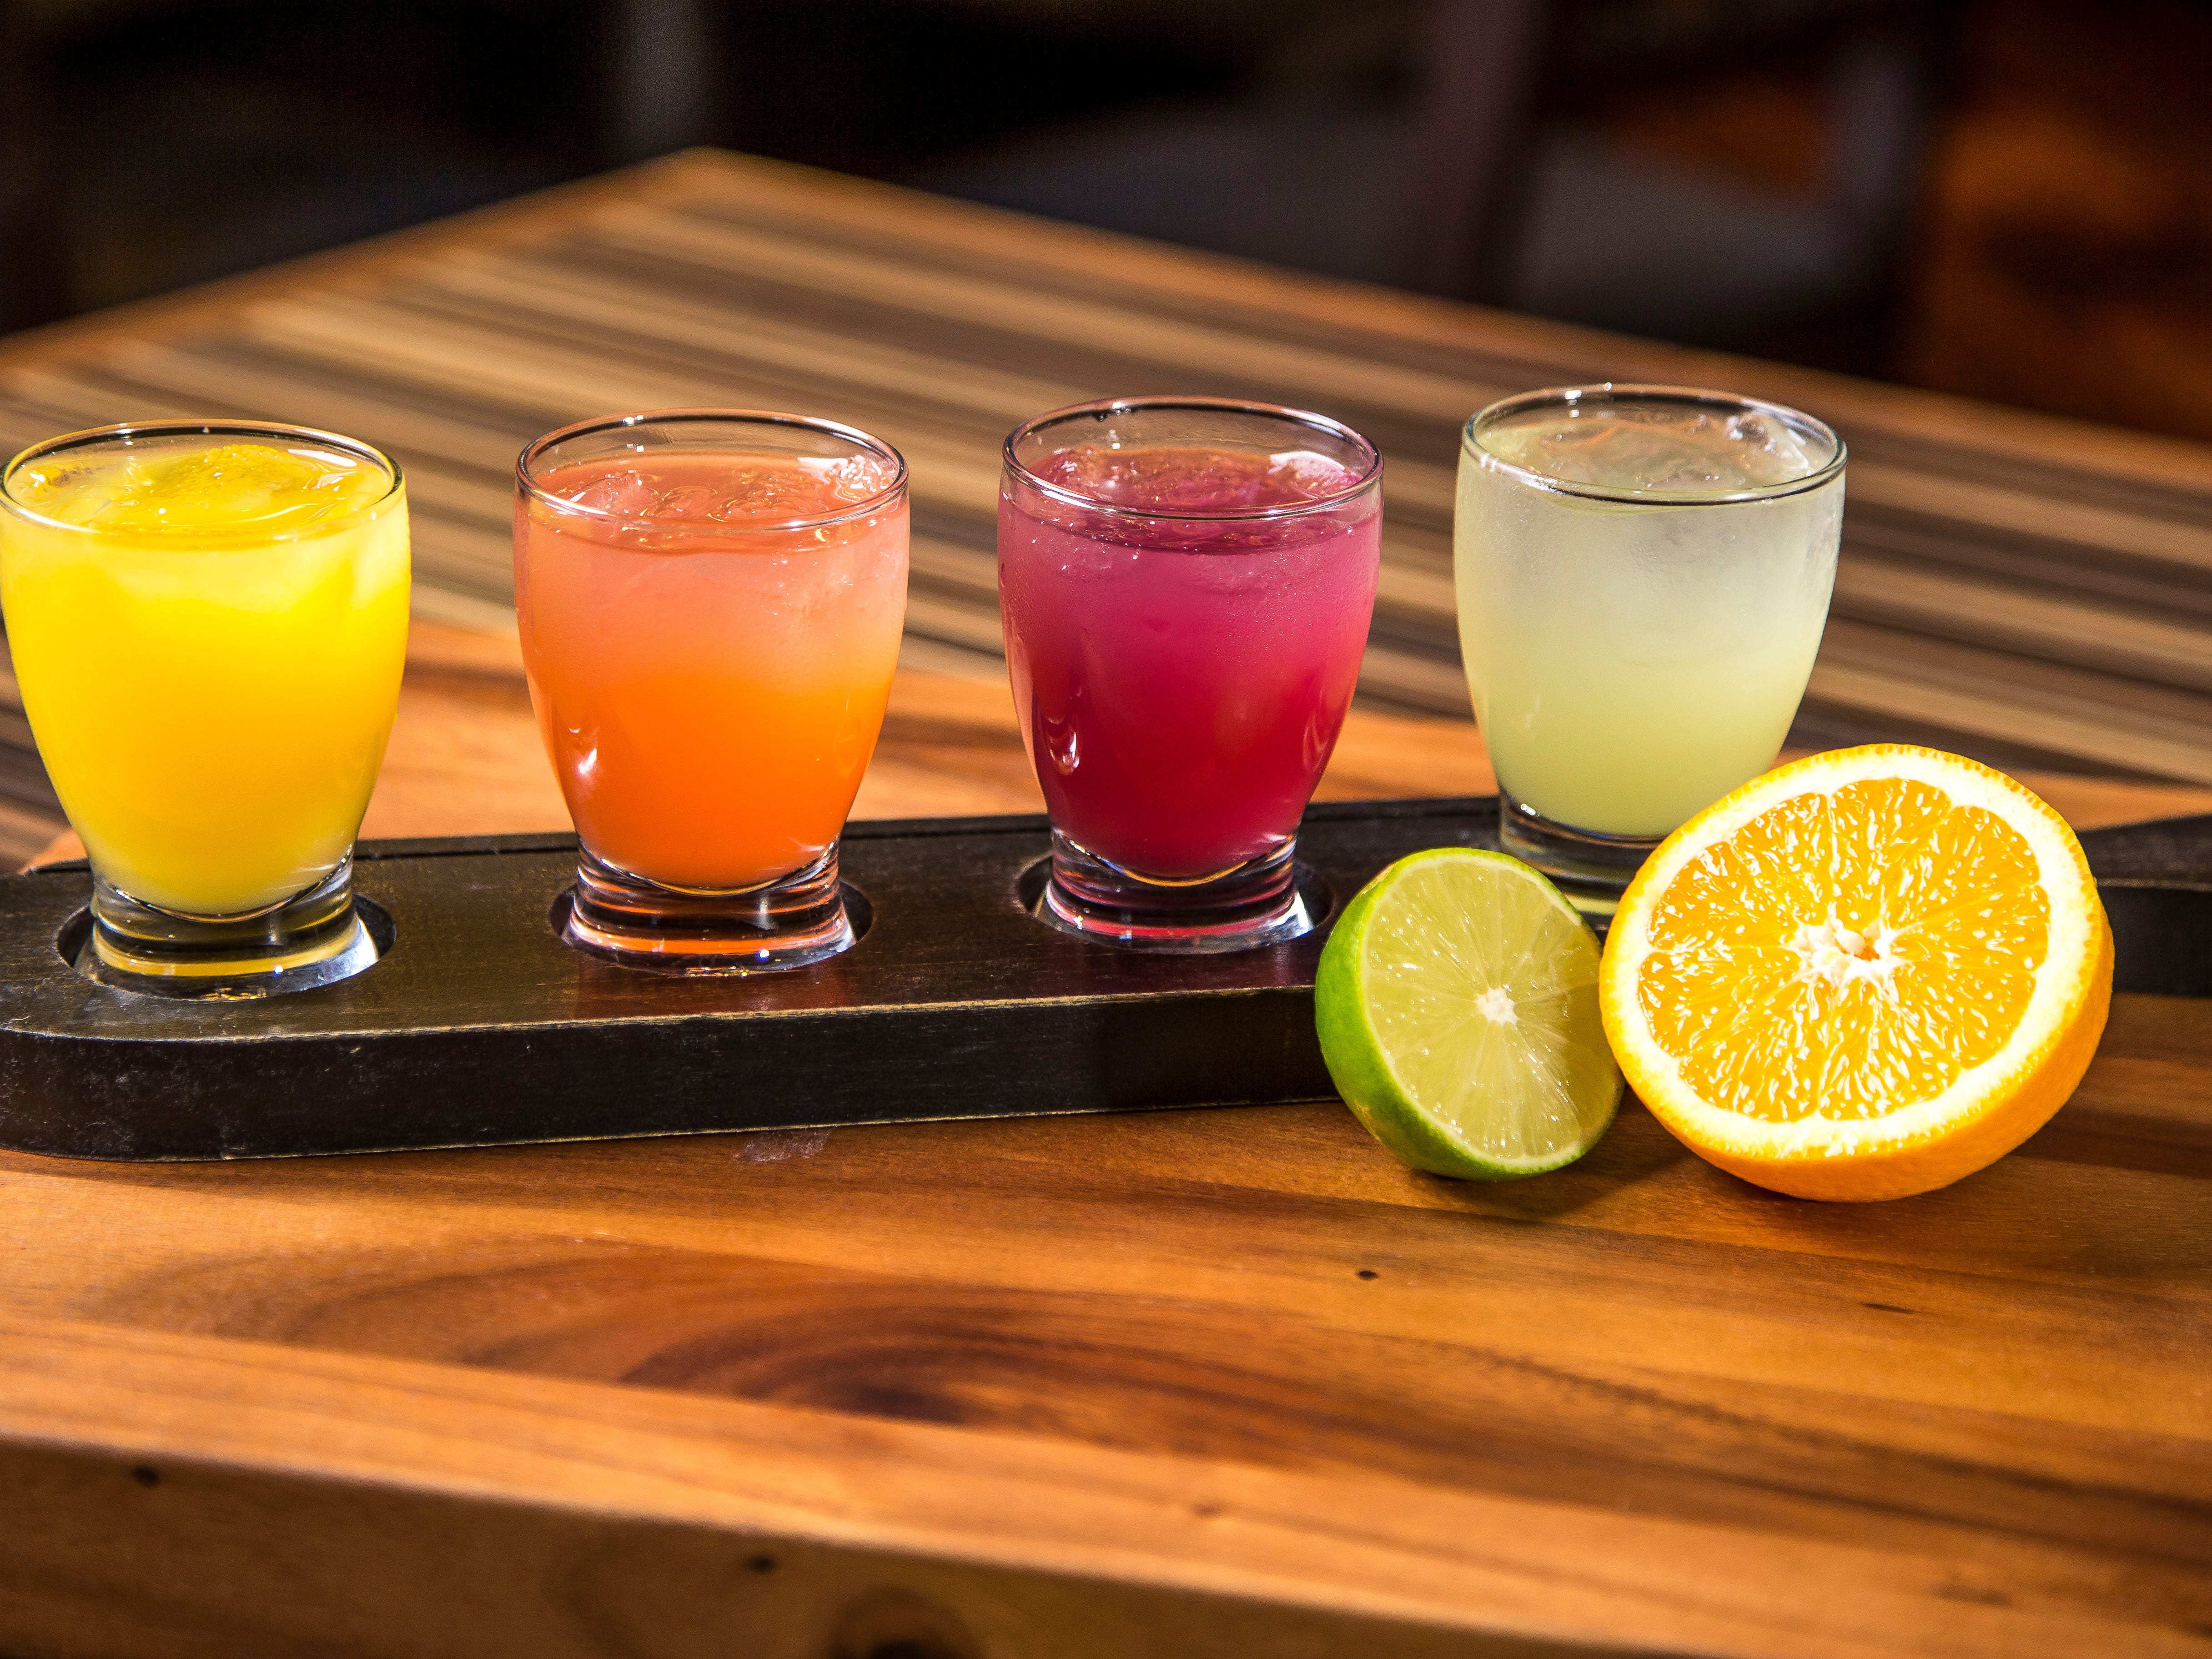 The build-your-own margarita flight at Macayo's Mexican Restaurants.